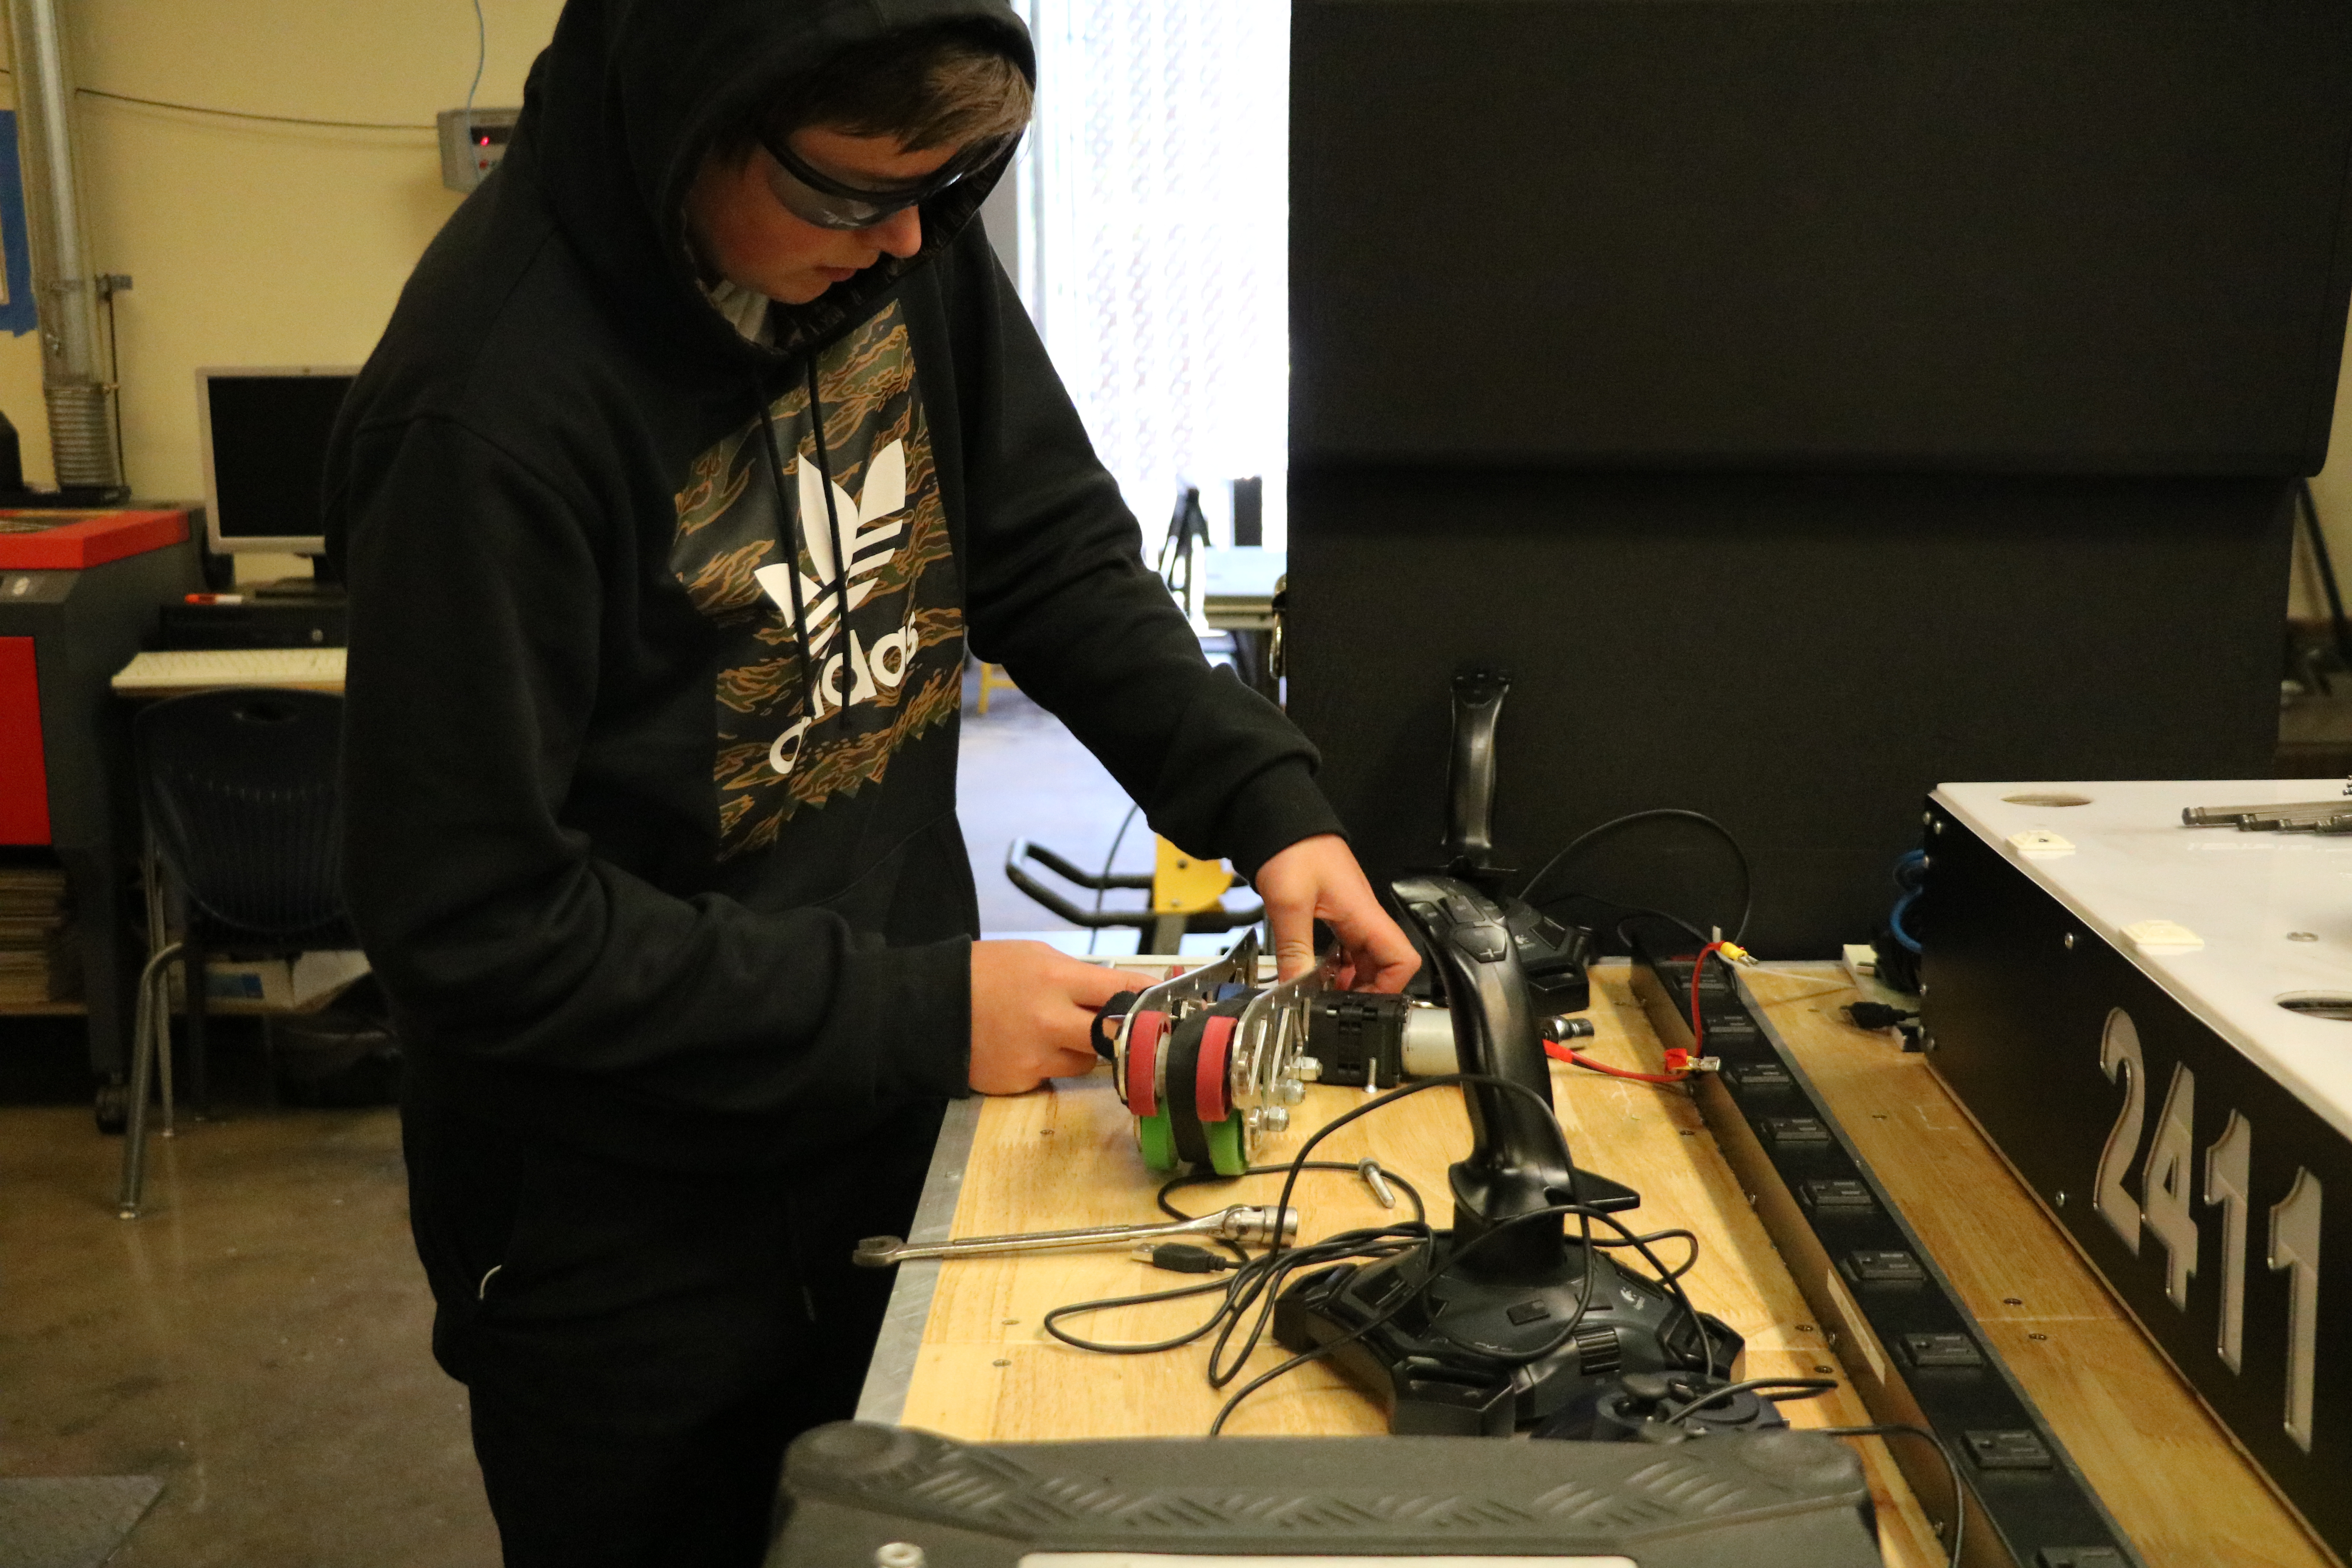 James Ericson Working on disassembling a part of the robot.